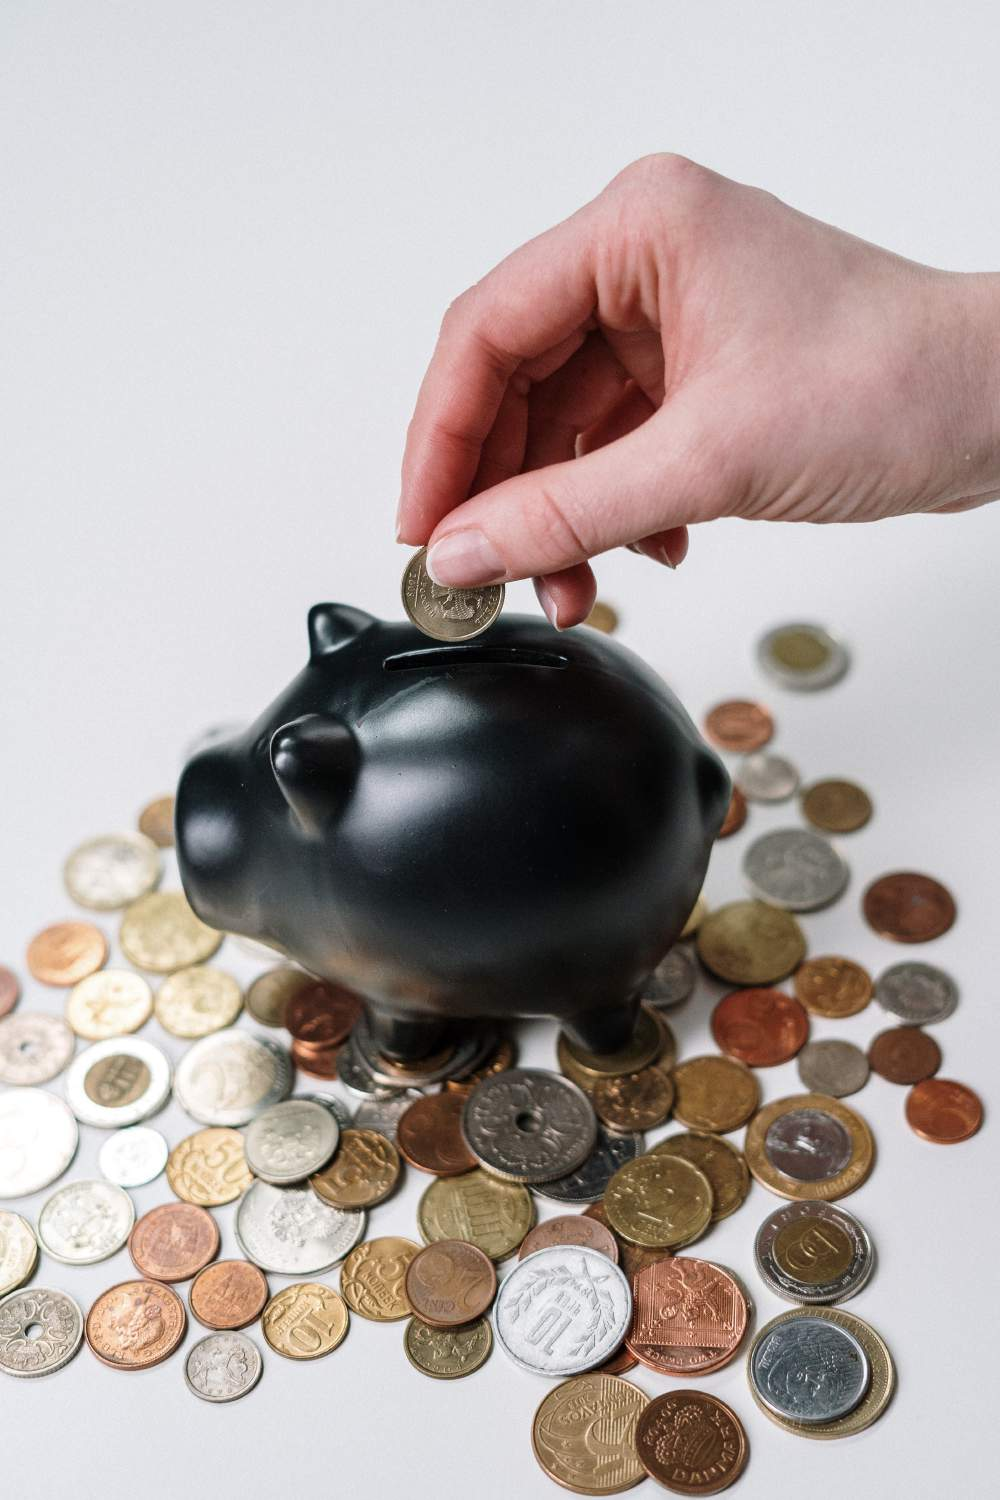 Money on my mind: Tips for managing finances